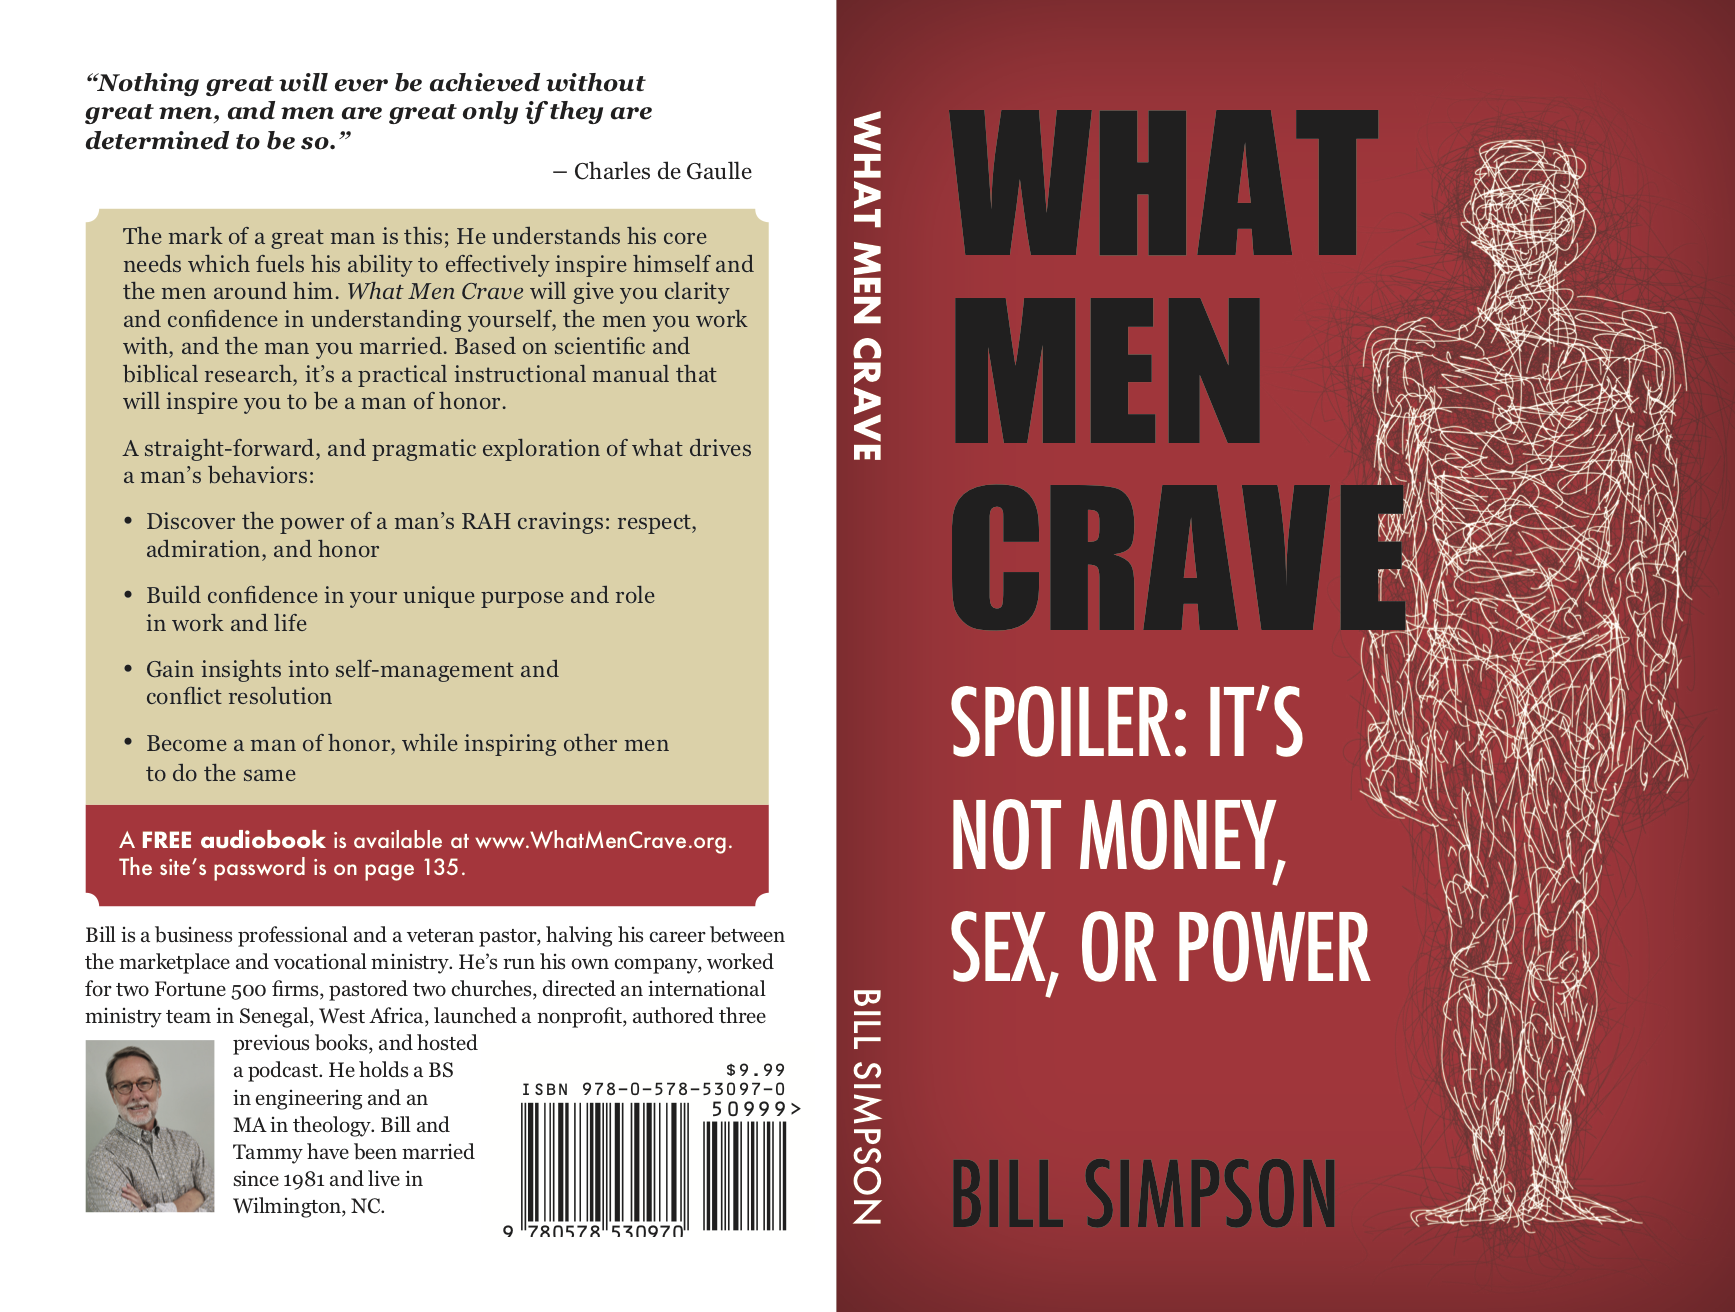 What Men Crave - Amazon Release 10/24 - Bill's latest book explores a man's RAH cravings - Respect, Admiration, and Honor.- Are you finding it challenging to be a man of honor? - Are you living up to the full potential of the man God created you to be? - Would you like to be more effective at encouraging the men you work with? - Do you really understand the heart of the man you married?The mark of a great man is this: he understands his core needs which fuels his ability to effectively inspire himself and the men around him.PRE-ORDER AN EBOOK TODAY - A FREE AUDIOBOOK WITH THE PURCHASE OF A PAPERBACK OR EBOOK